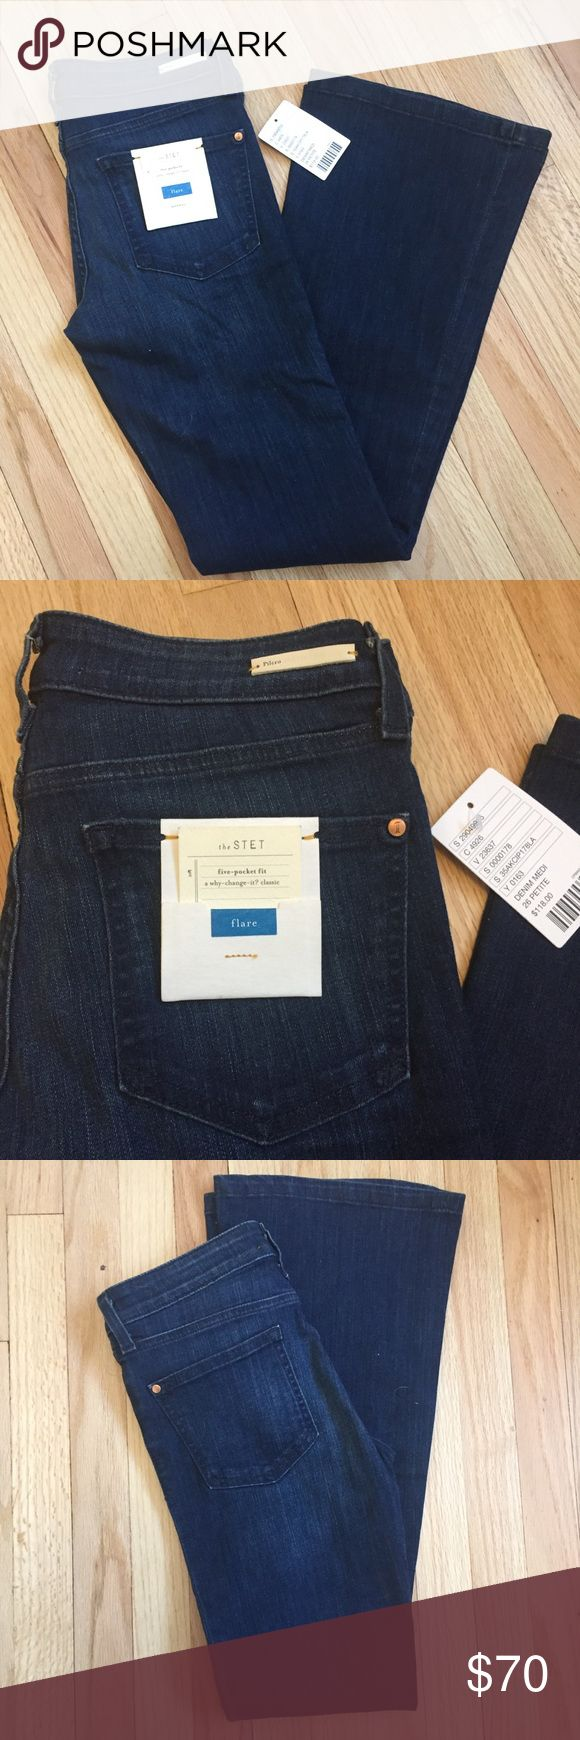 "Anthropologie • Pilcro Stet Petite Flare Jeans Anthropologie • Pilcro Stet Petite Flare Jeans  Pilcro and the Letterpress. Medium wash, flare, petite sizing, 5 pocket, zip front closure, mid rise.   NWT. no flaws to note.  Waist: 28"" Rise: 6.5"" Inseam: 31"" Length: 37.5"" Anthropologie Jeans Flare & Wide Leg"